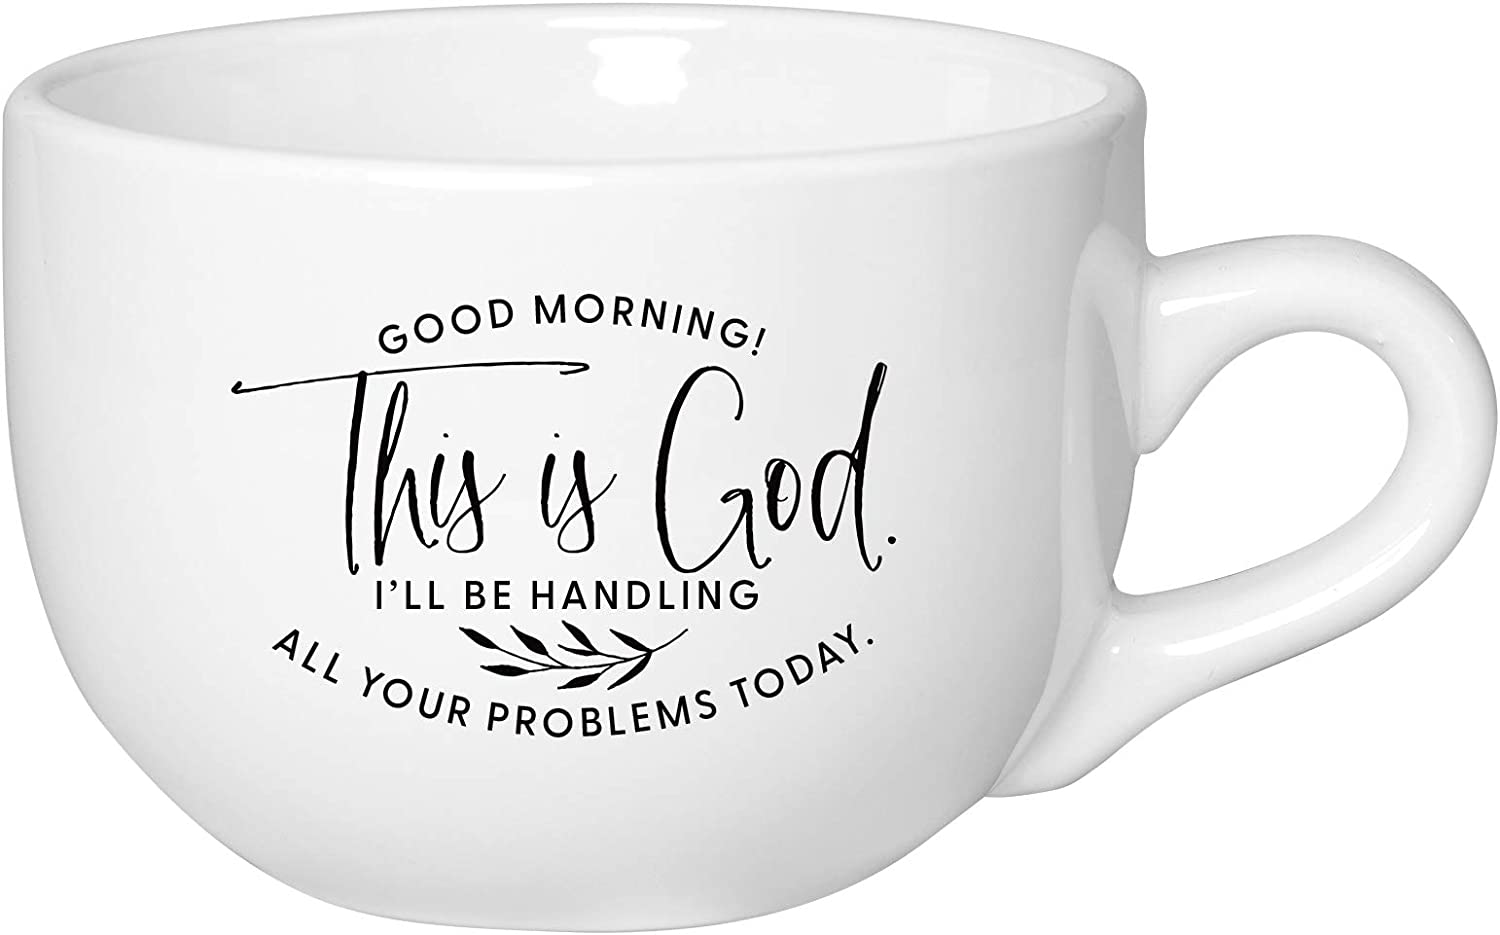 Coffee Tea Soup Ceramic Mug | Good Morning! This is God. I'll be handling all your problems today. | 20 ounce Designer Mug - Inspiring Sentiment | Dishwasher and Microwave Safe | Great for Lattes